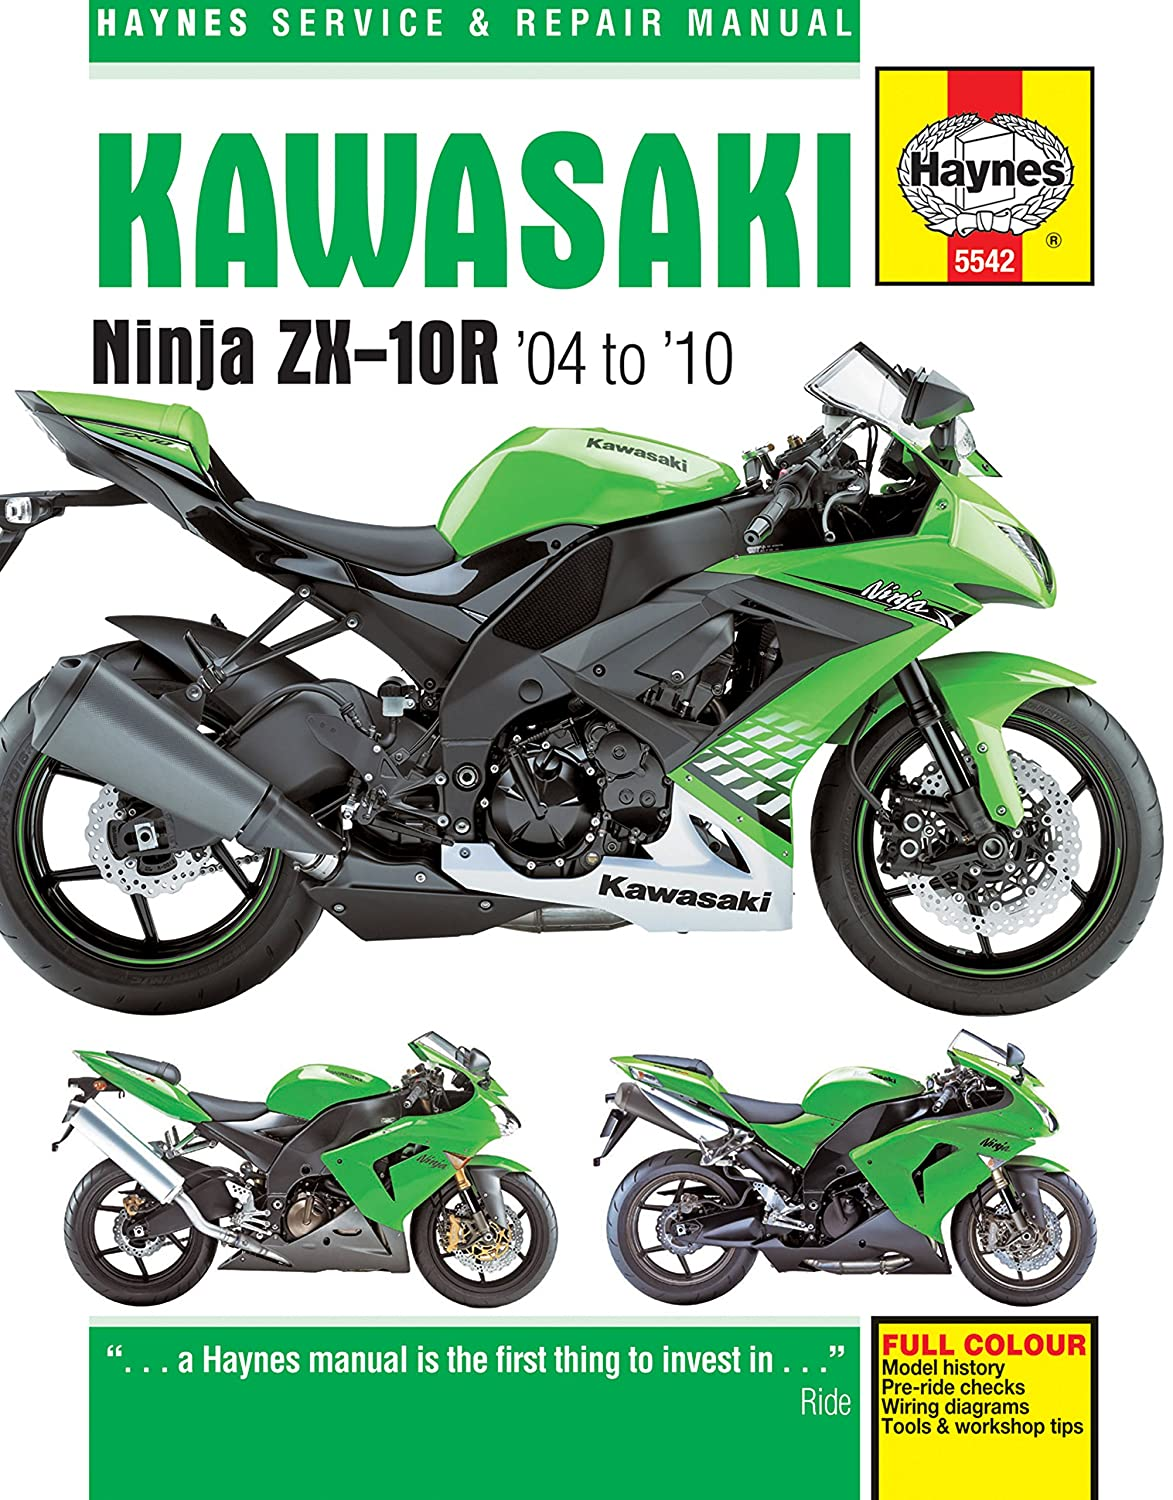 Amazon.com: 2004-2010 Kawasaki Ninja ZX10R HAYNES REPAIR MANUAL: Automotive